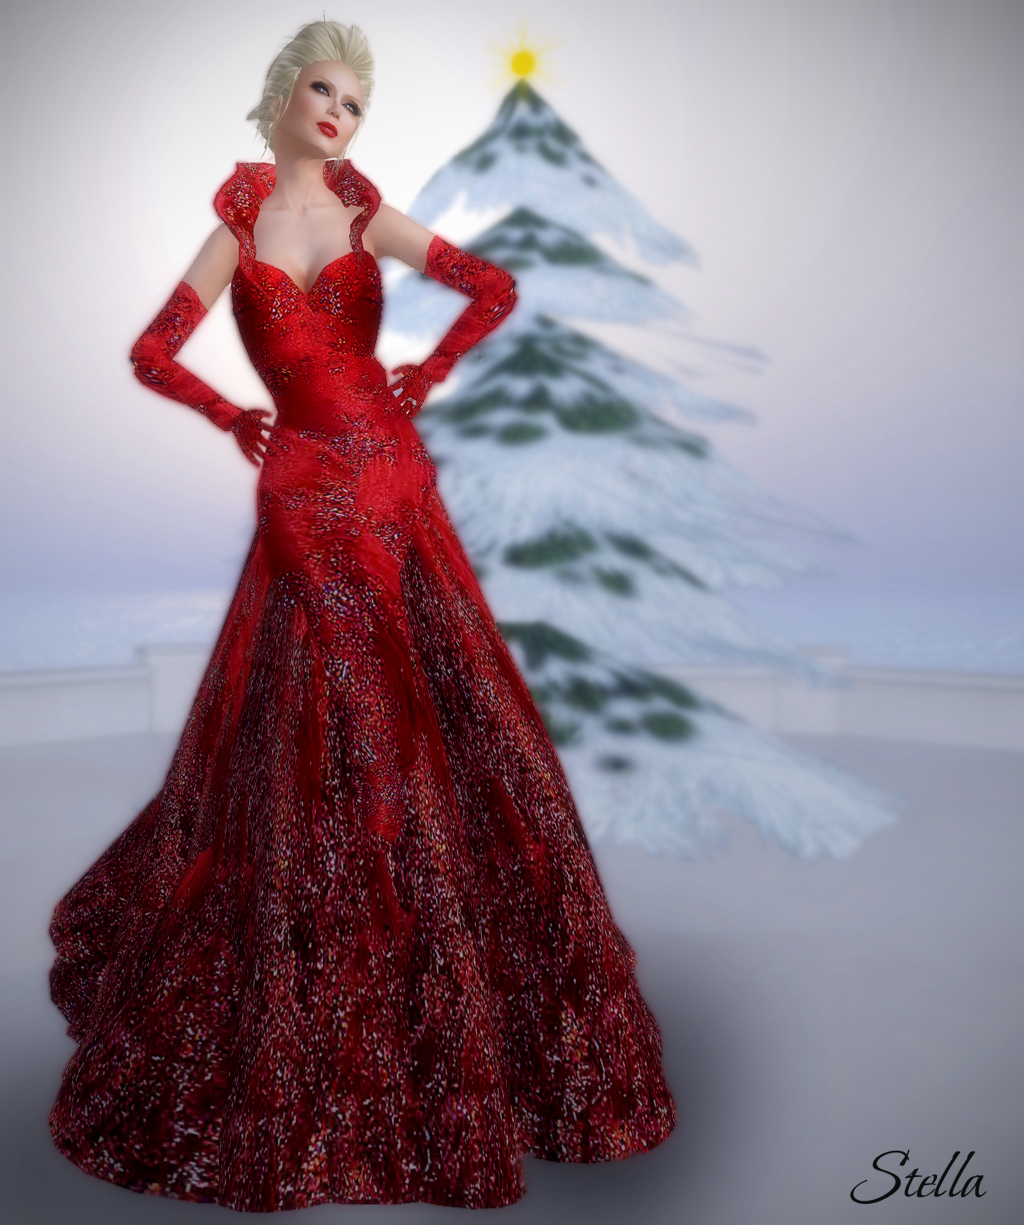 Sascha's Designs Novice Berry gown